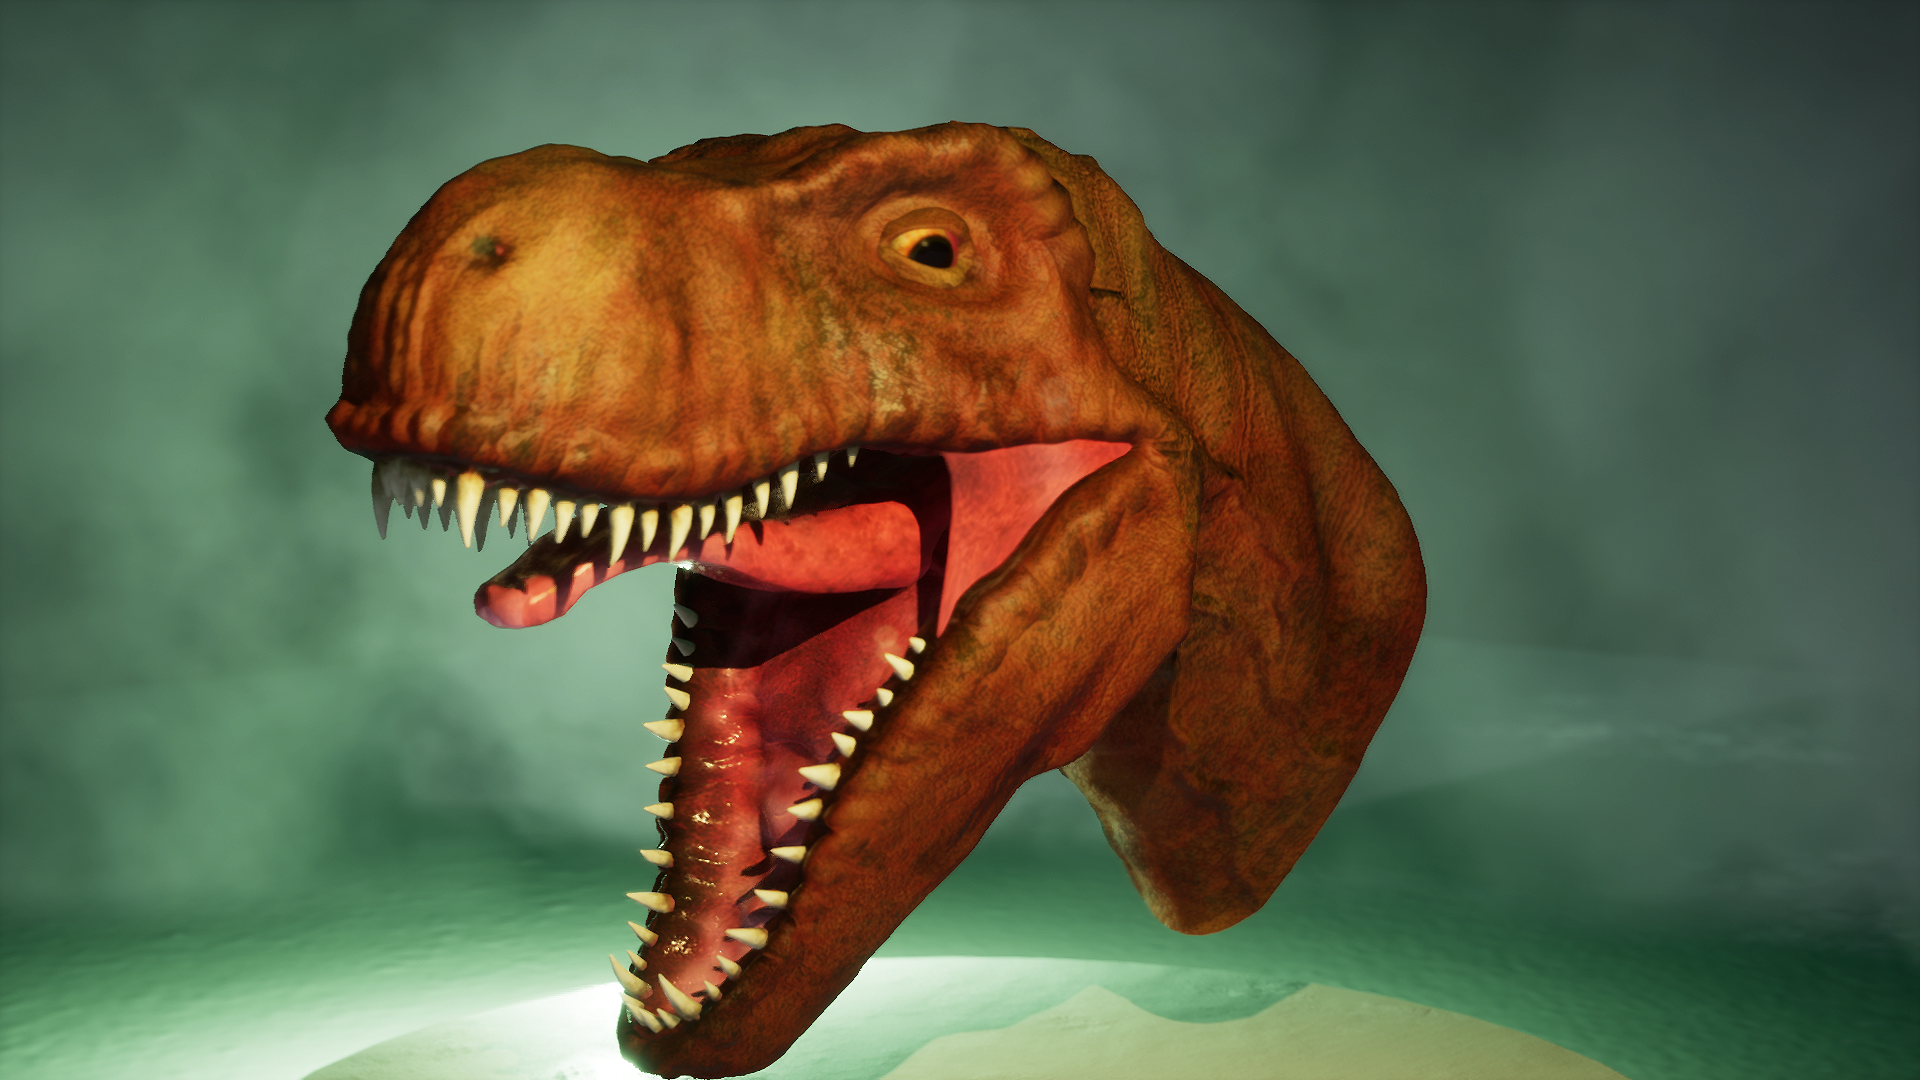 T-Rex Head sans feathers...